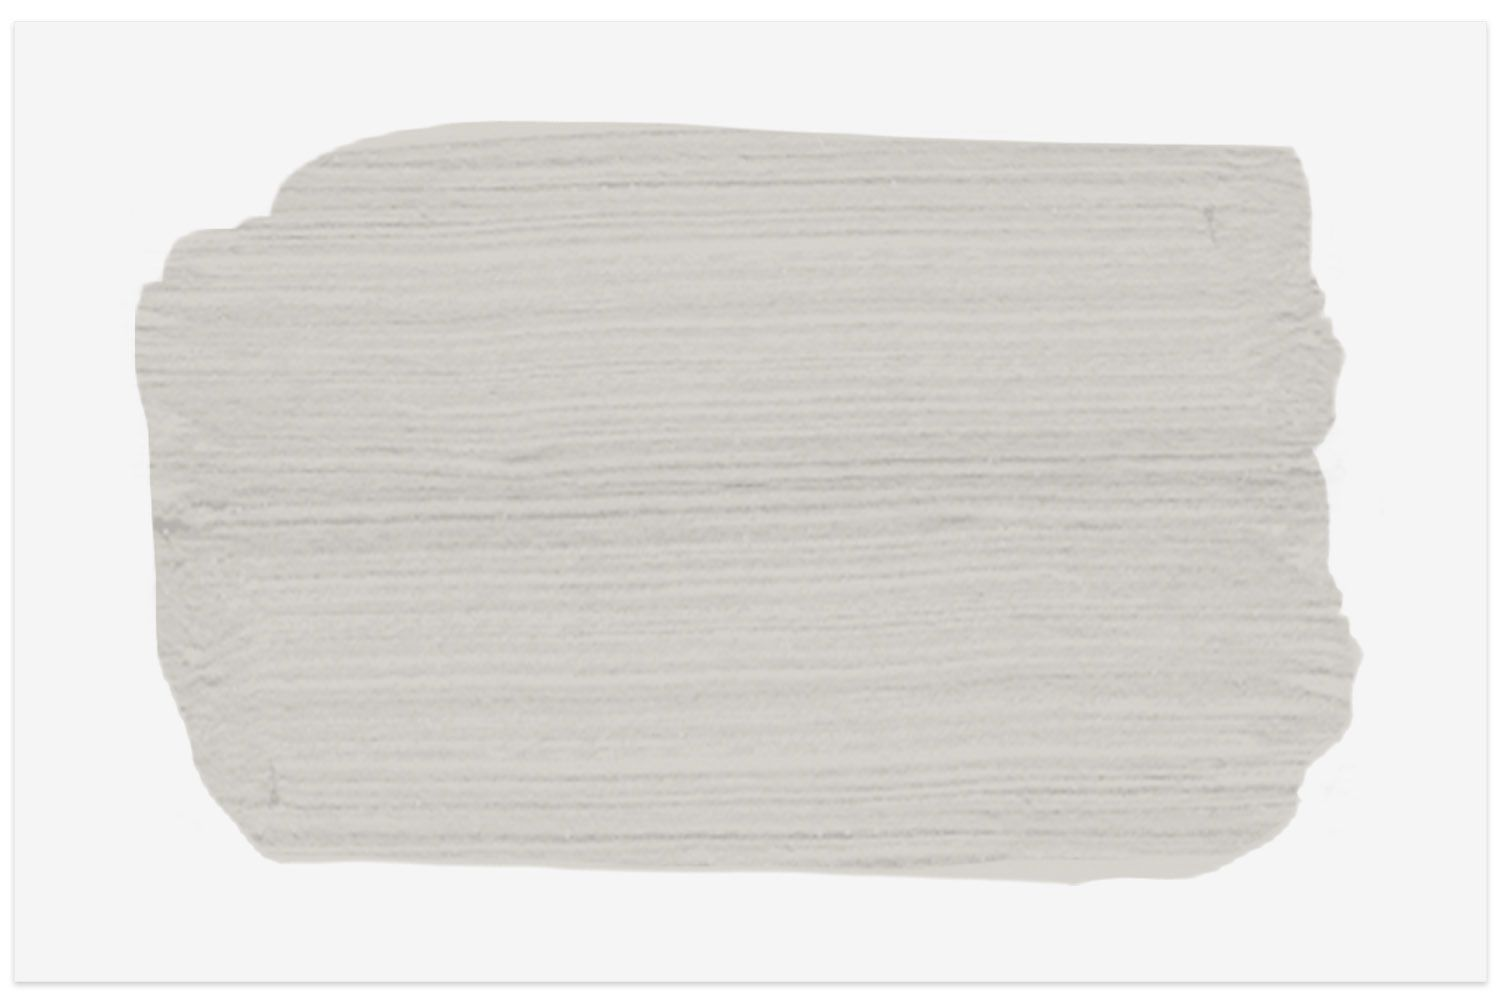 Crushed Ice SW 7647 paint swatch from Sherwin-Williams